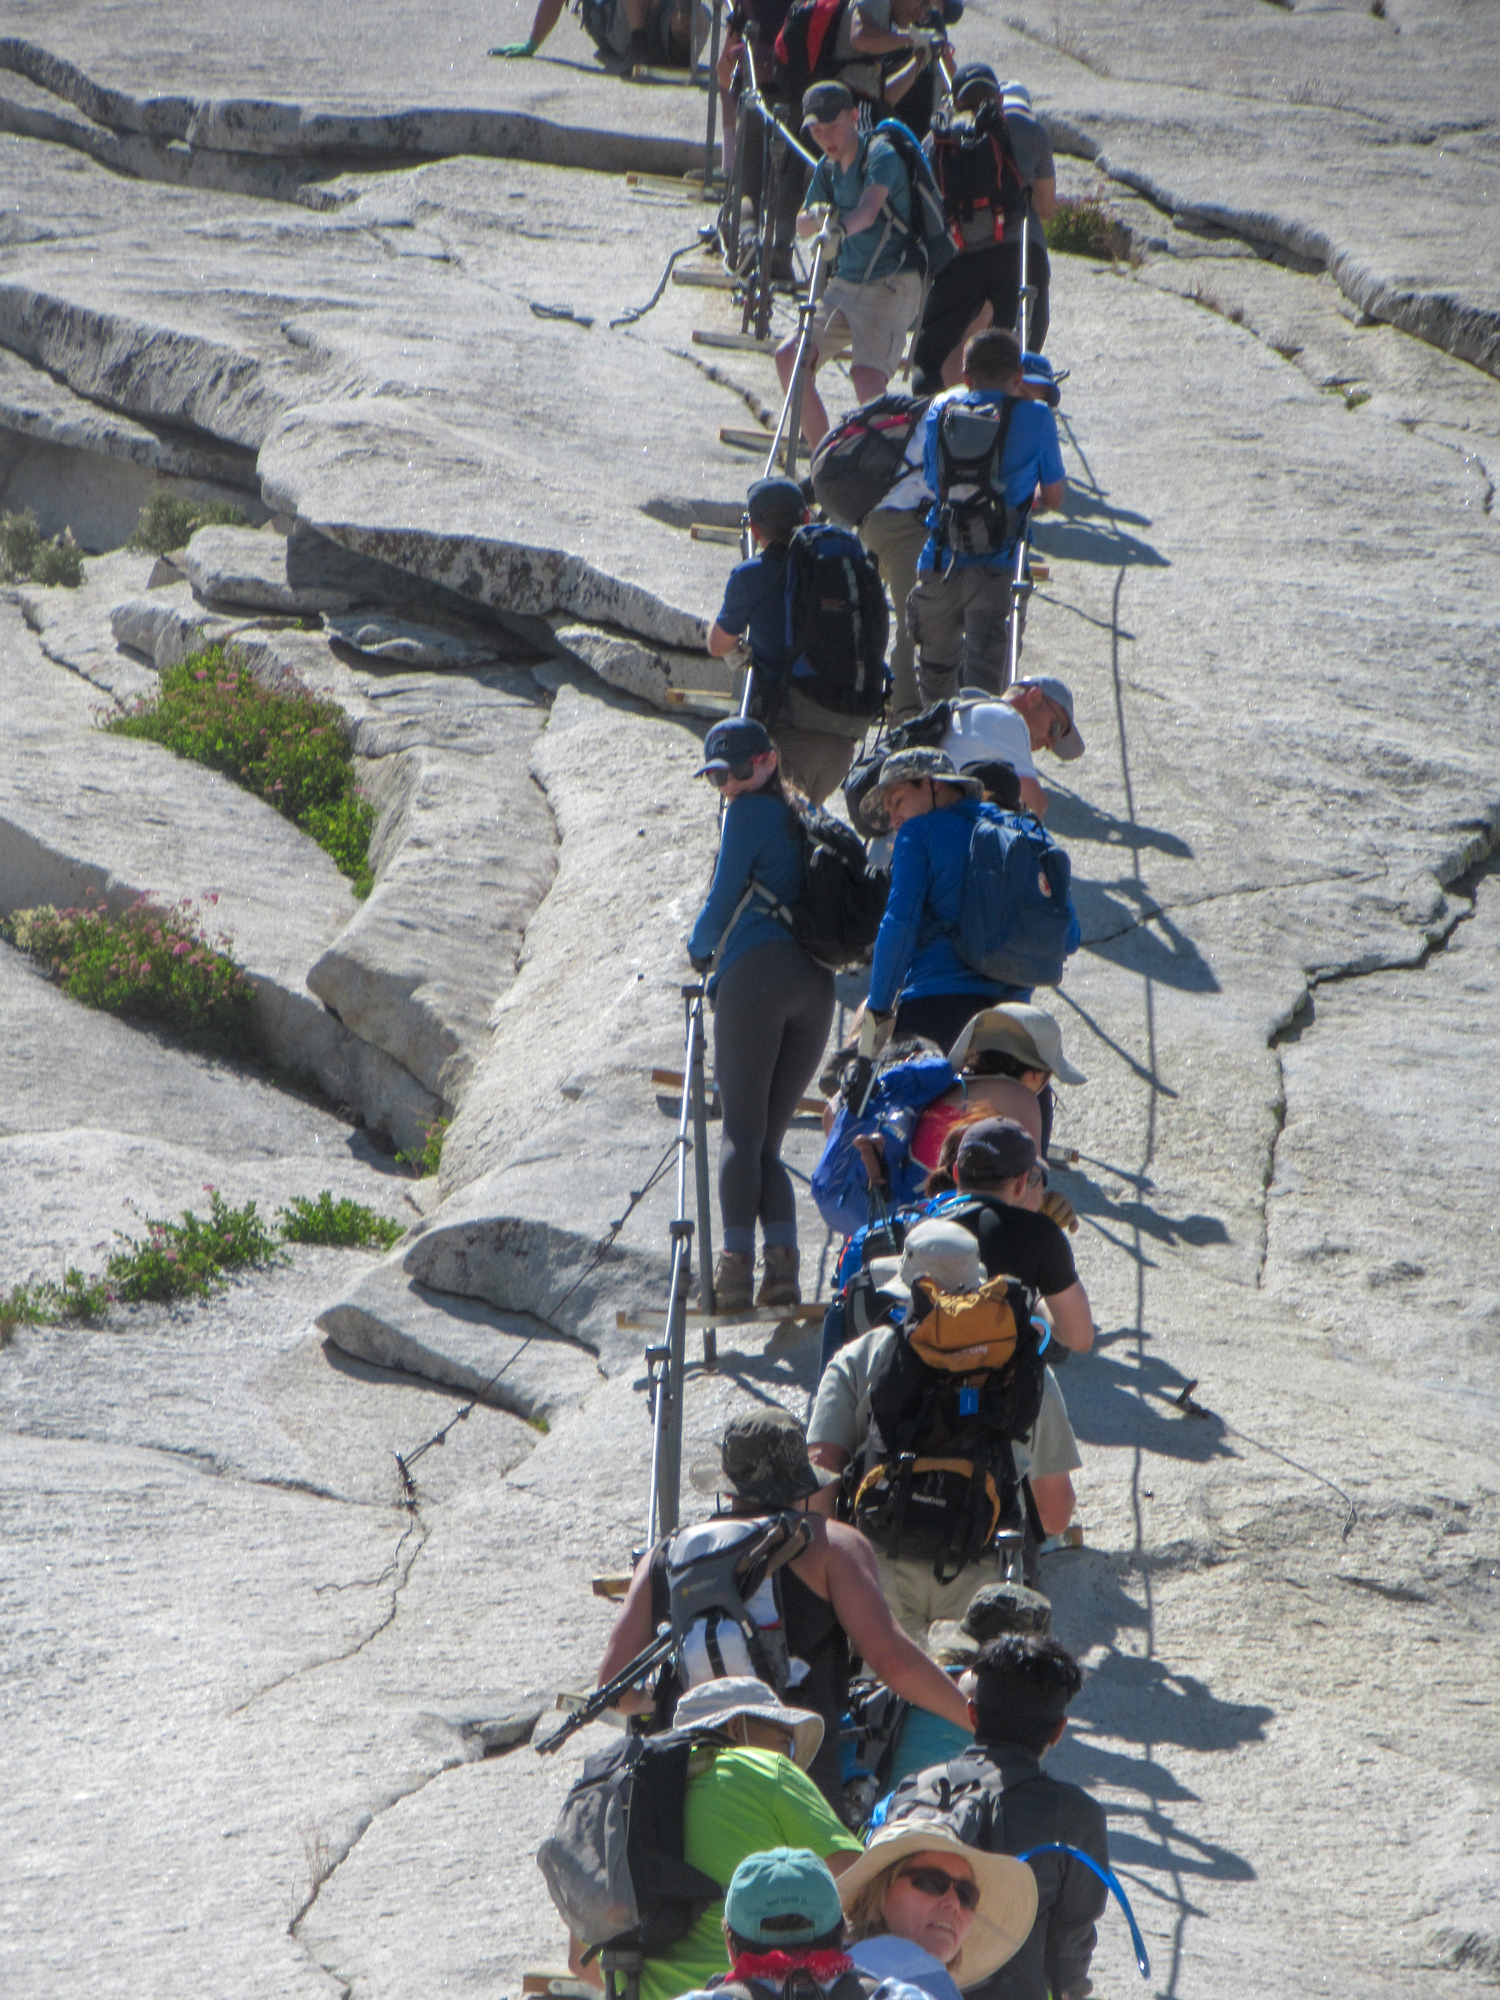 Traffic jam on the Half Dome Cables.